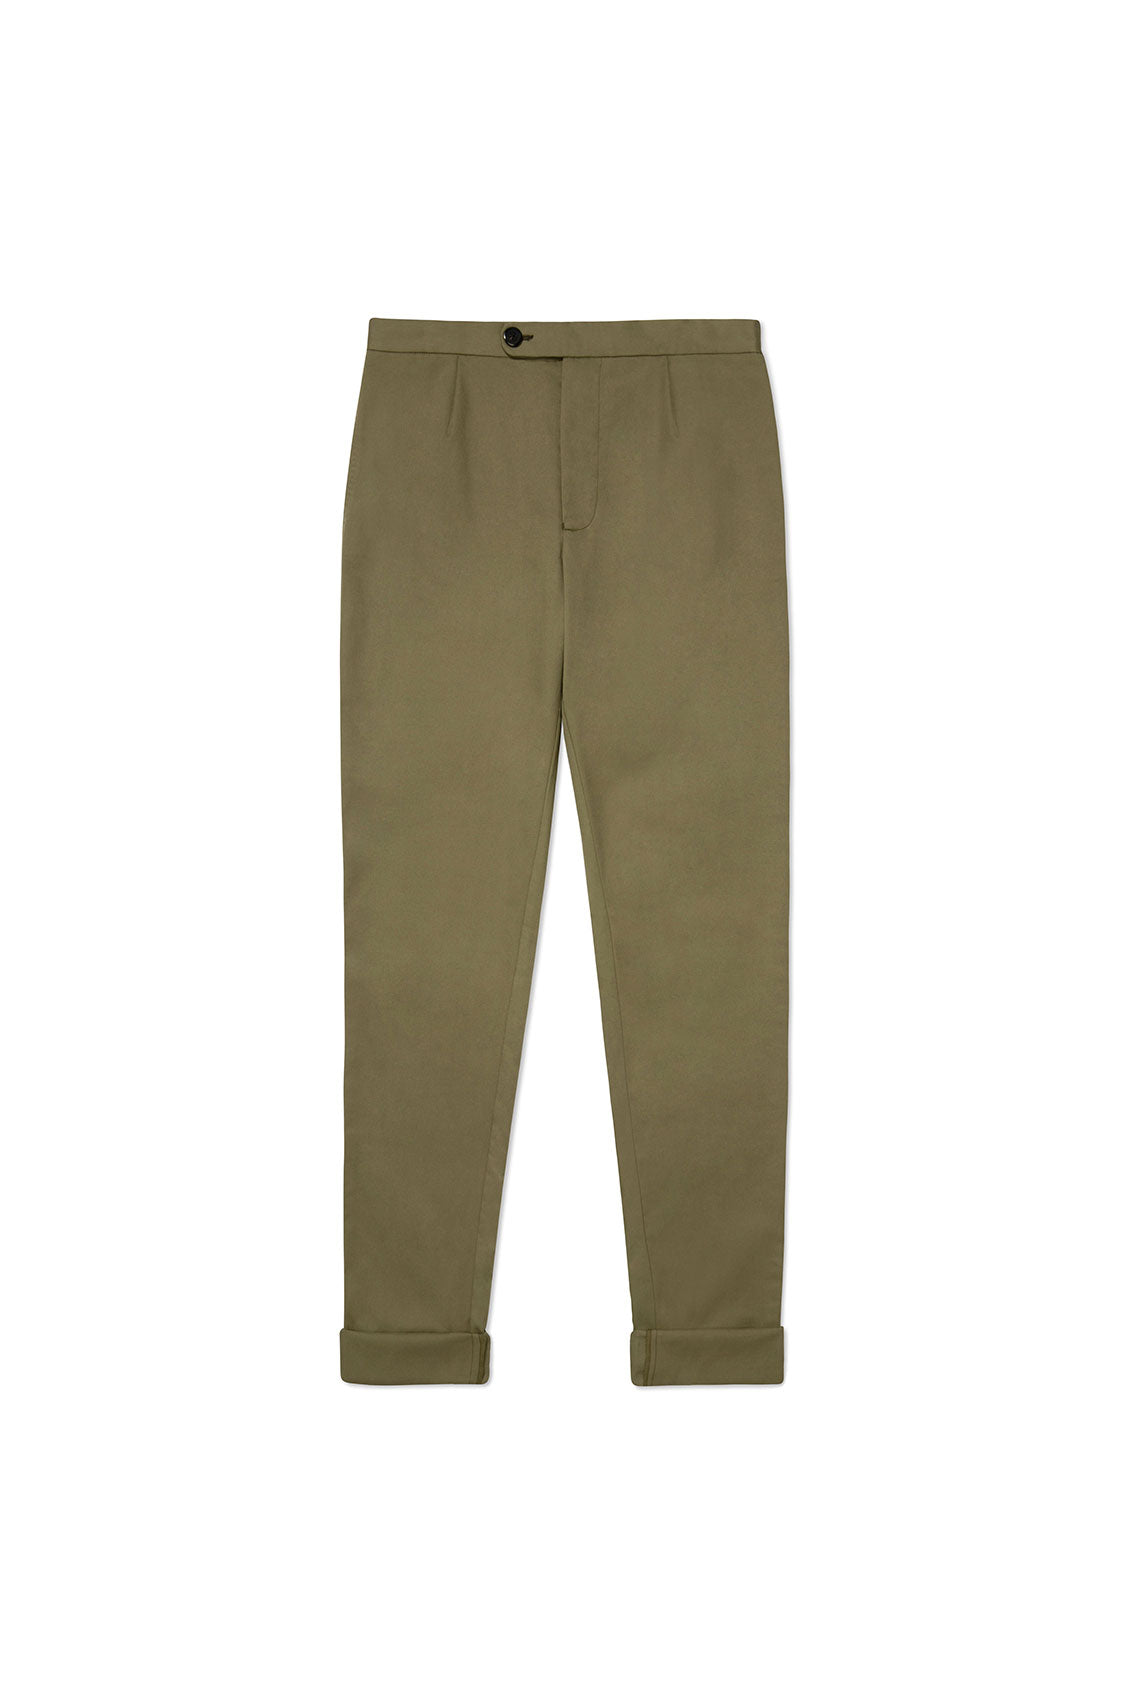 P Johnson Green Cotton Tencel Drawstring Trousers